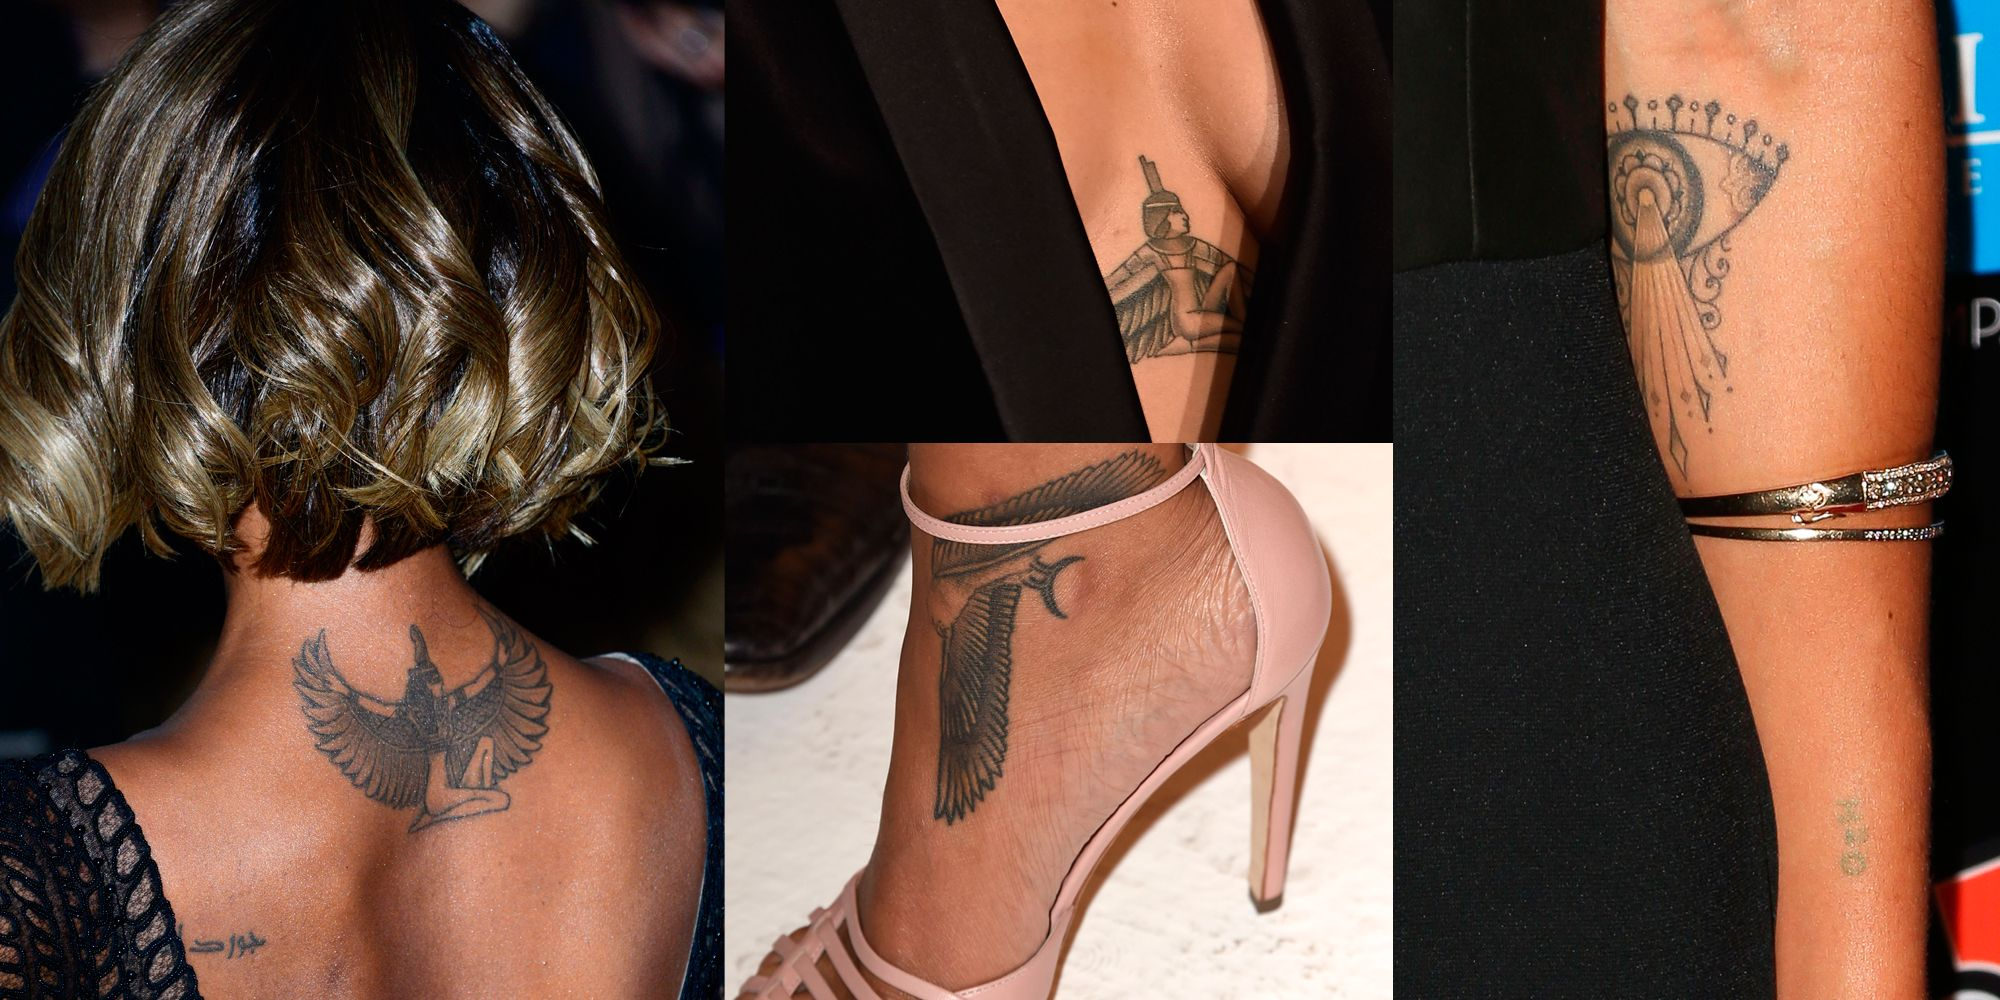 Pretty Celebrity Tattoos On Black Skin Tones Some patients see improved clearance after the first treatment, while others may take a few treatments to see results. celebrity tattoos on black skin tones